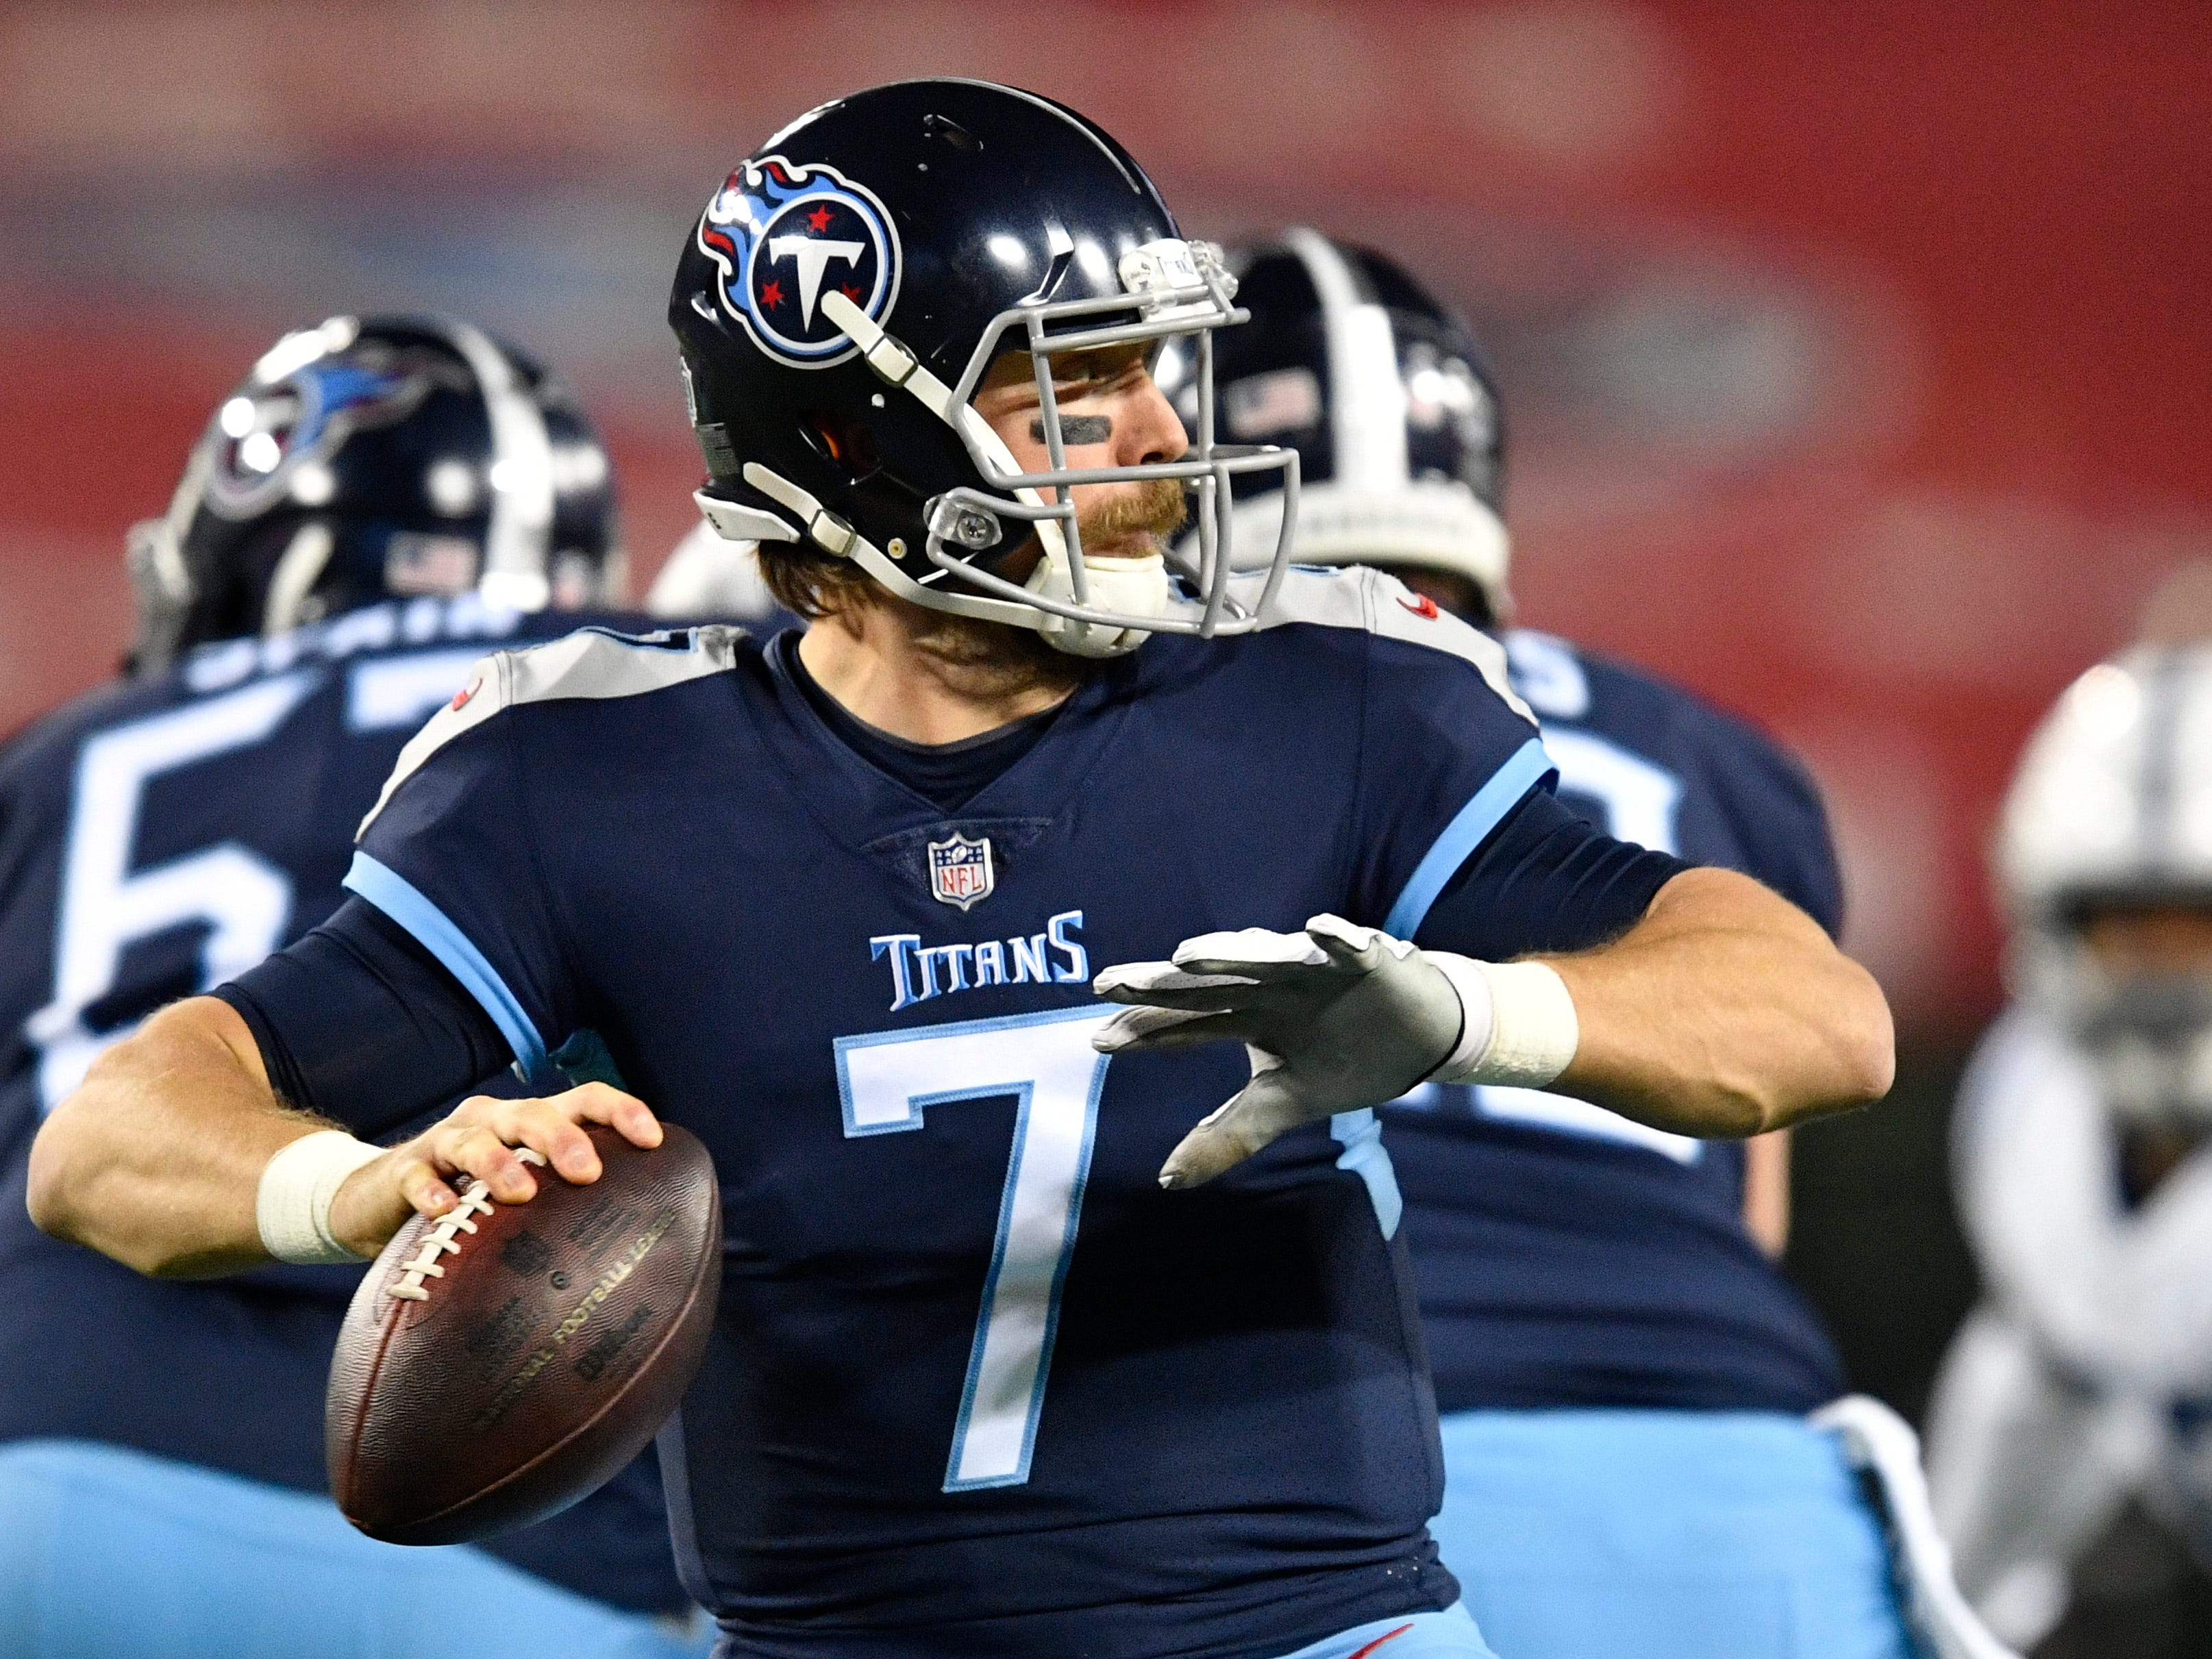 Titans quarterback Blaine Gabbert (7) passes in the first half at Nissan Stadium Sunday, Dec. 30, 2018, in Nashville, Tenn.